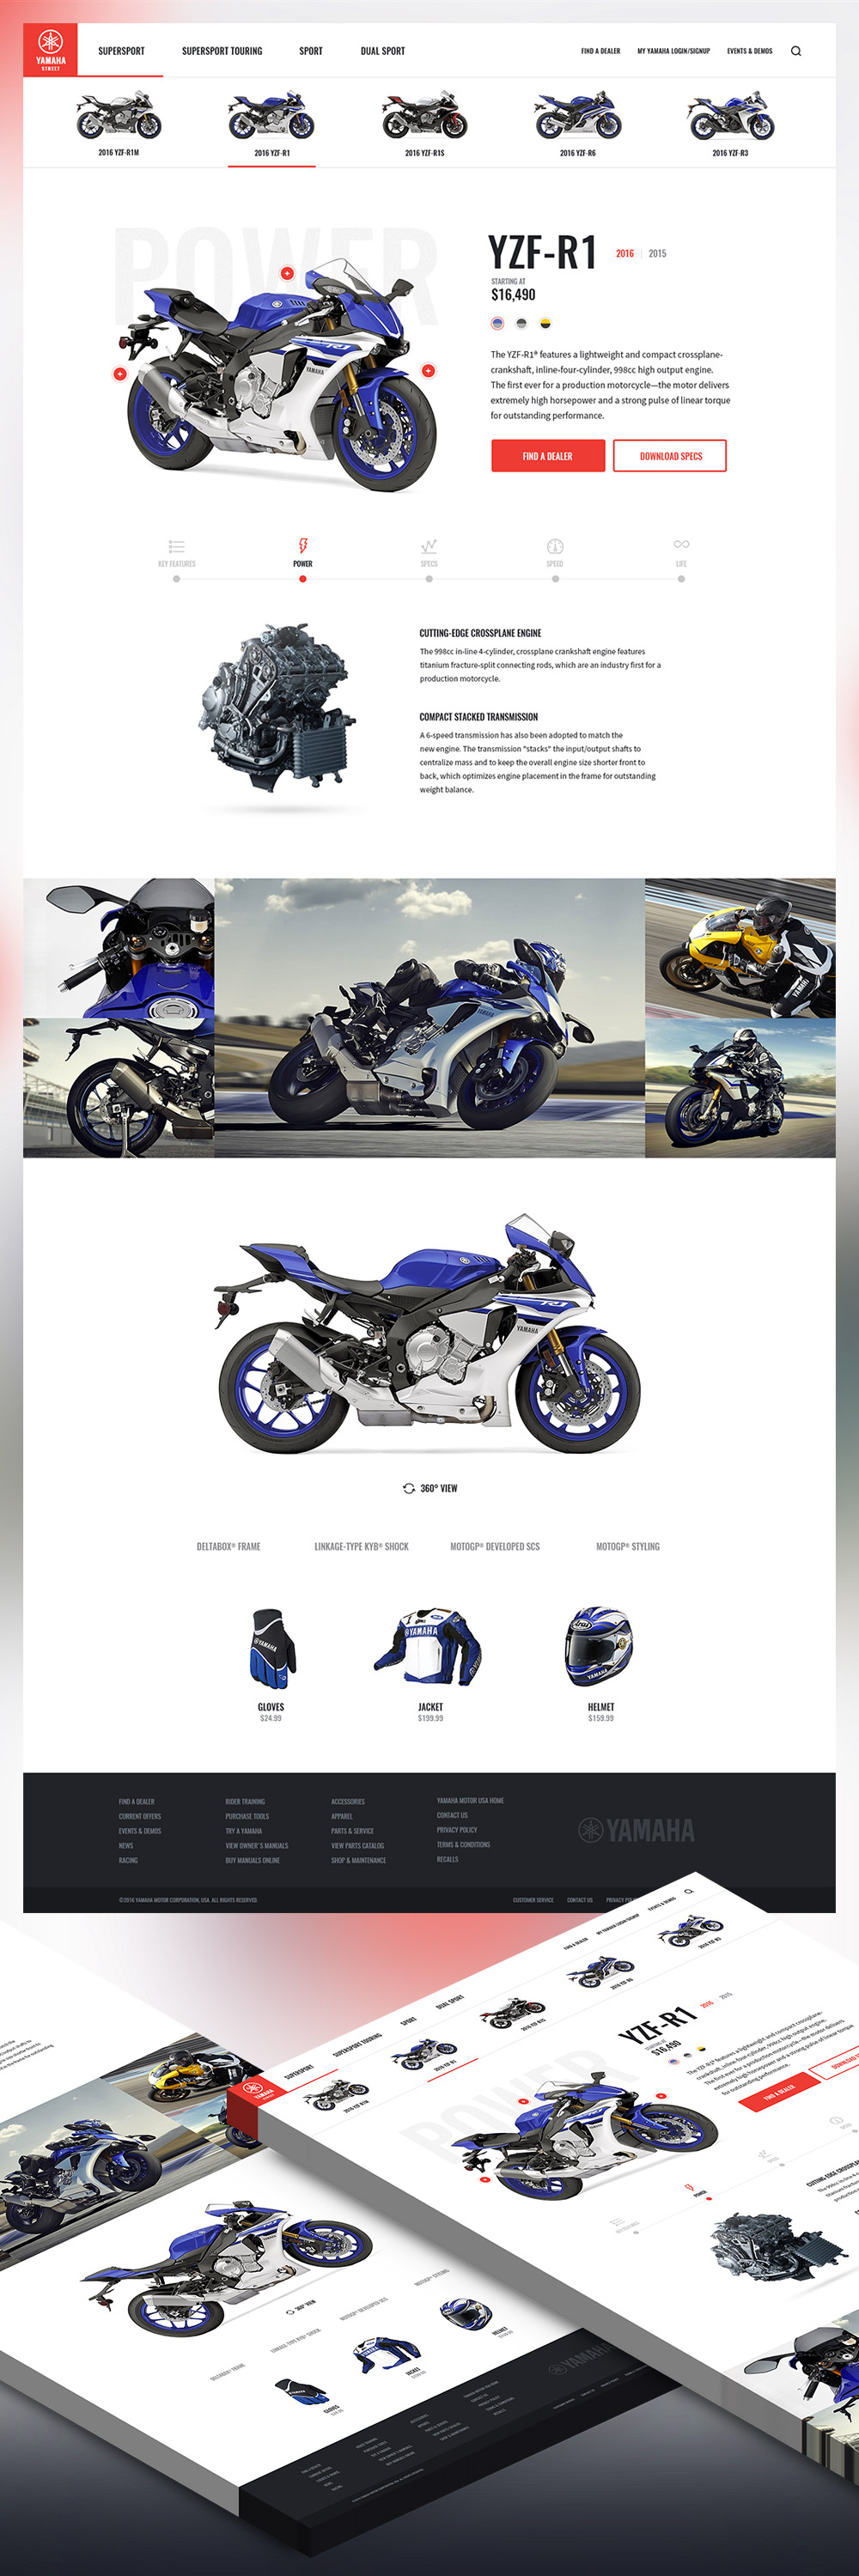 Motor bike shop free psd website template download psd for Free microsite templates